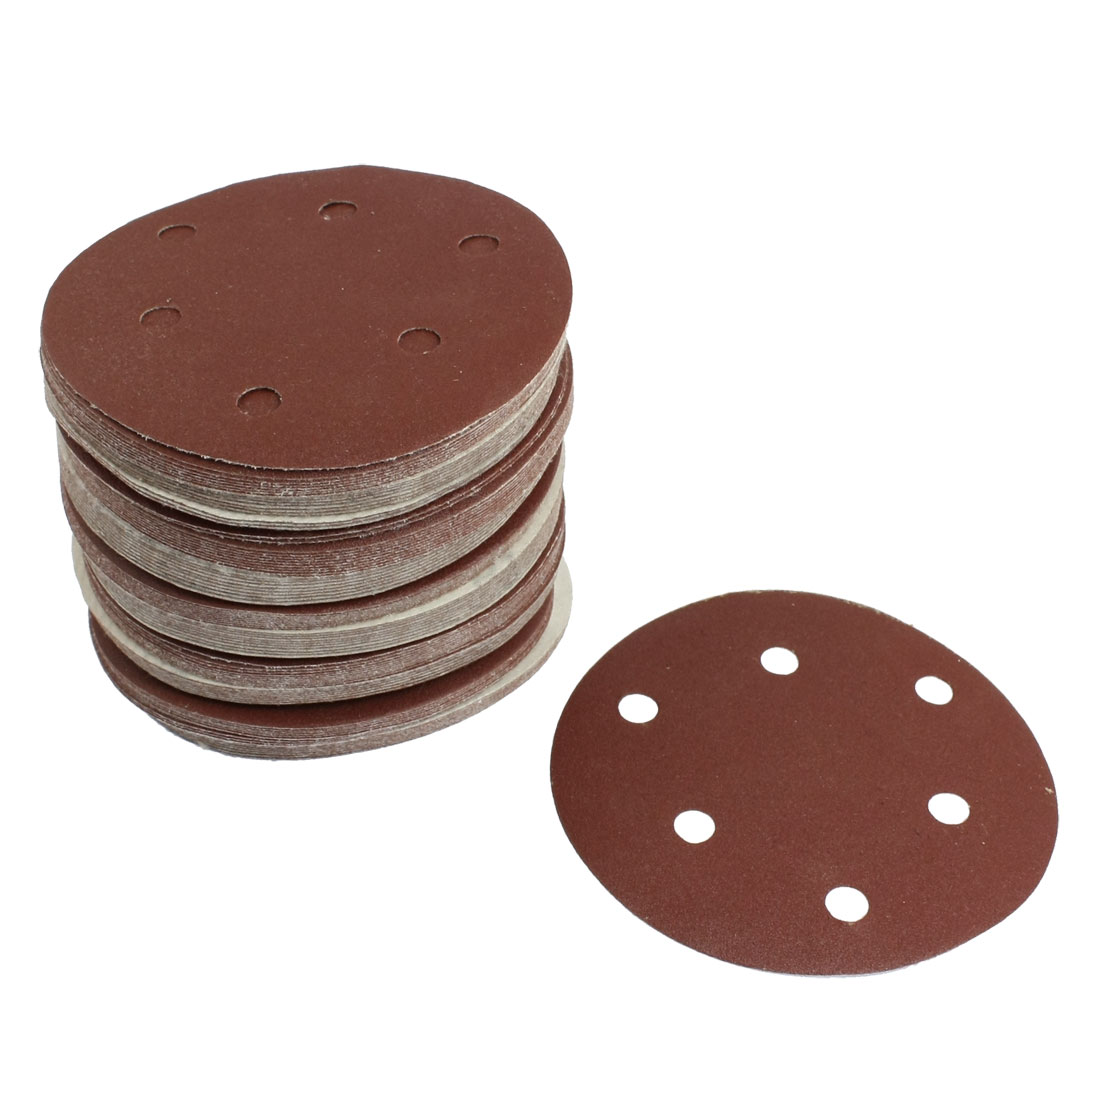 "100 x 180 Grit 6 Hole 5"" Diameter Sandpaper Hook Loop Sanding Disc 125mm"